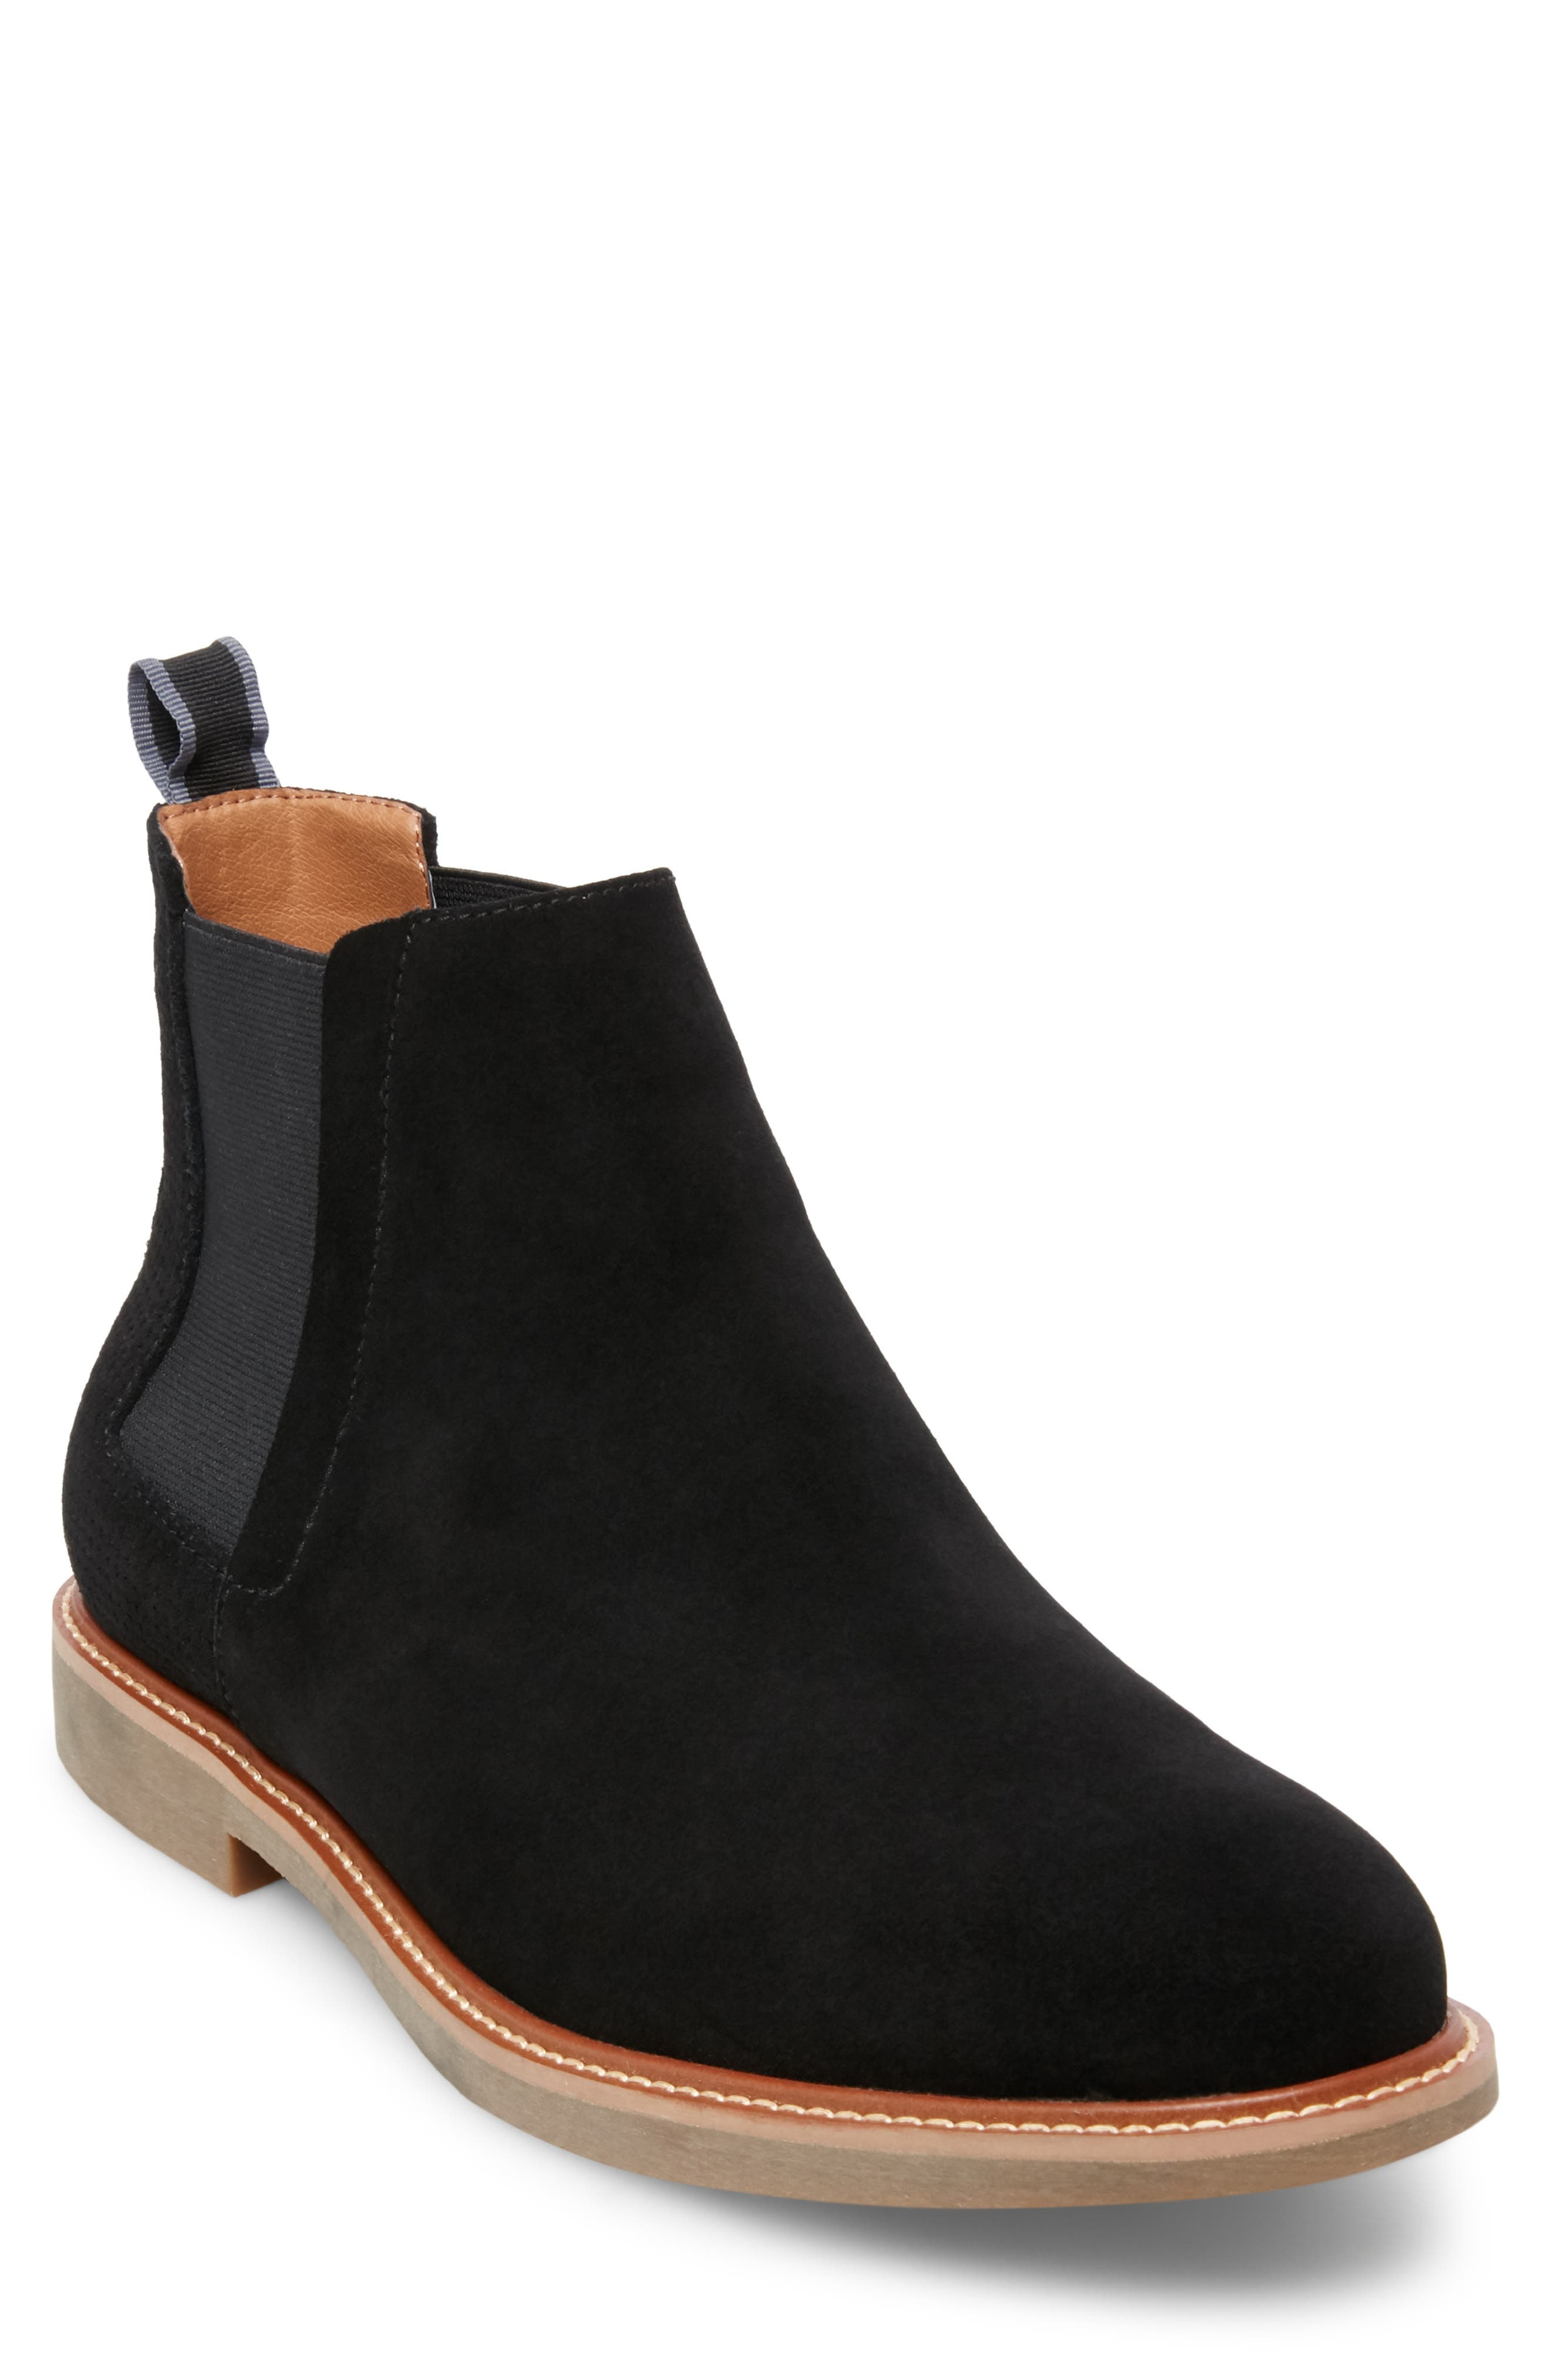 Highlyte Textured Chelsea Boot,                             Main thumbnail 1, color,                             006